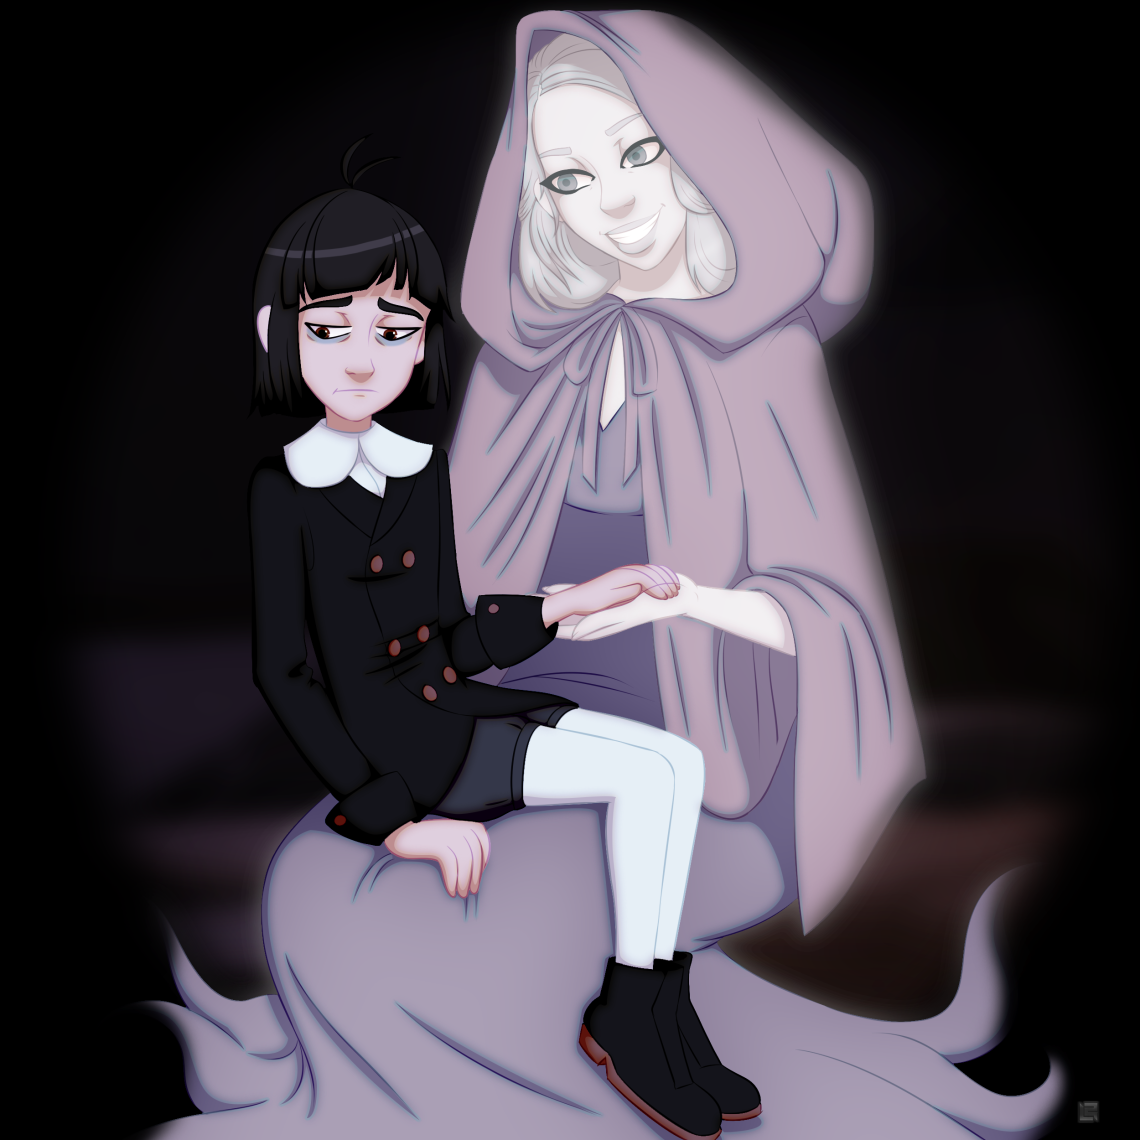 Digital art drawing of ghost mother and sad little boy